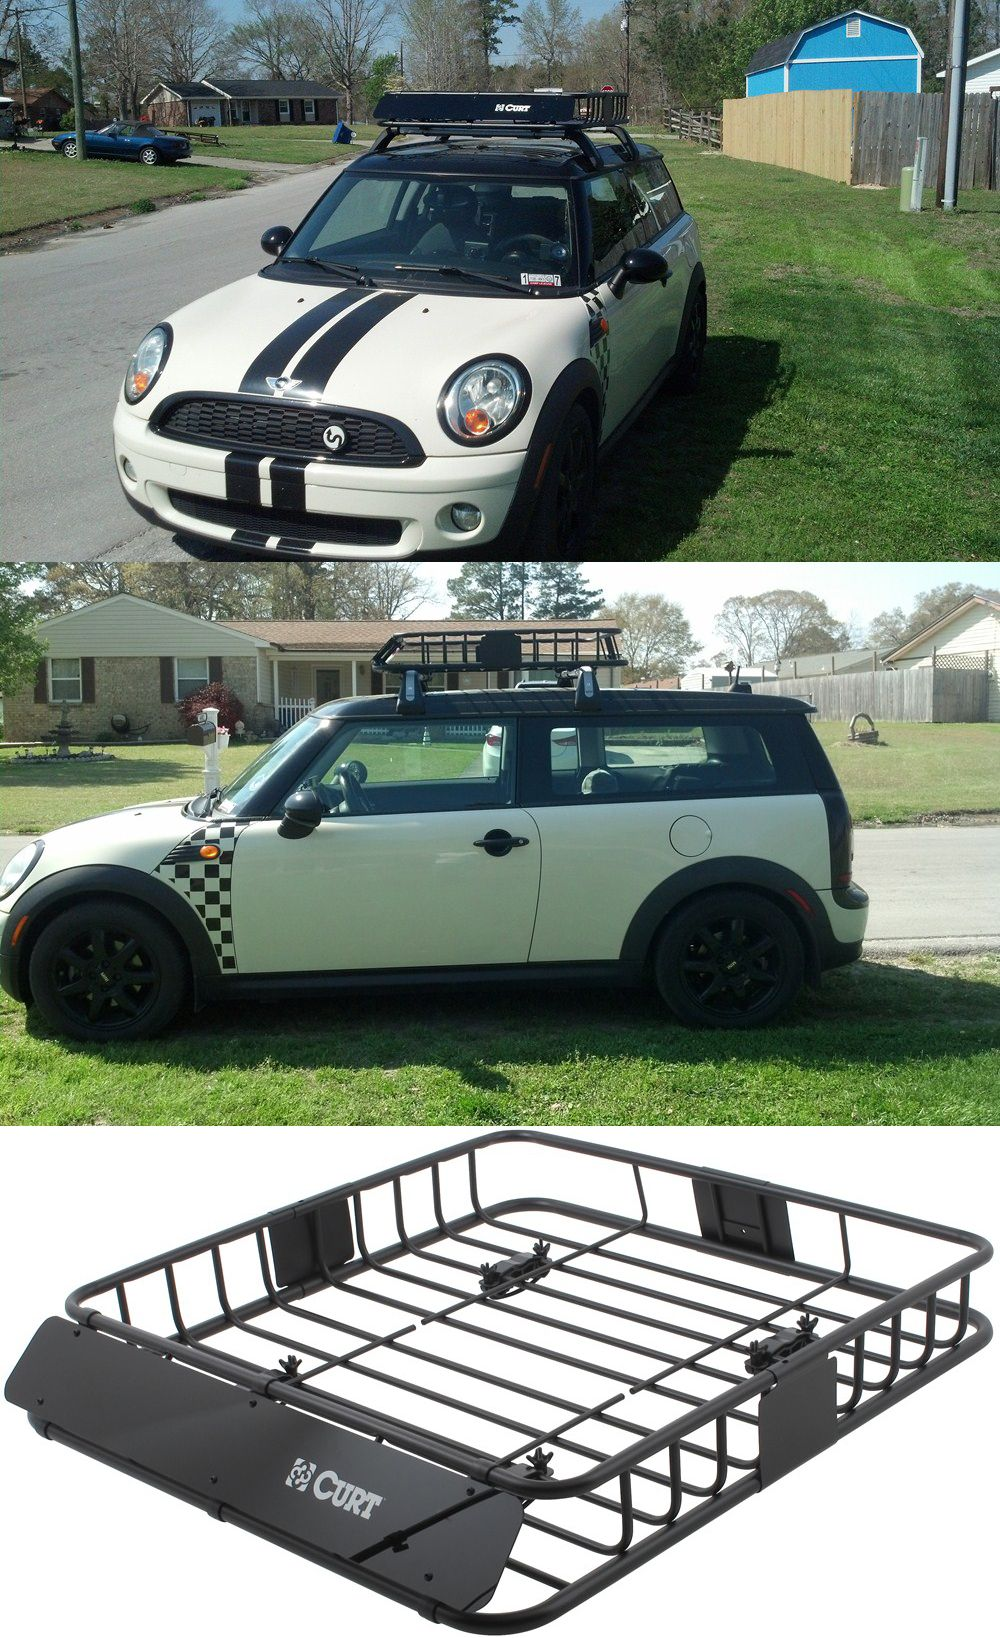 Curt Roof Mounted Cargo Basket 41 1 2 Long X 37 Wide X 4 Deep 150 Lbs Curt Roof Basket C18115 Car Roof Racks Mini Clubman Roof Rack